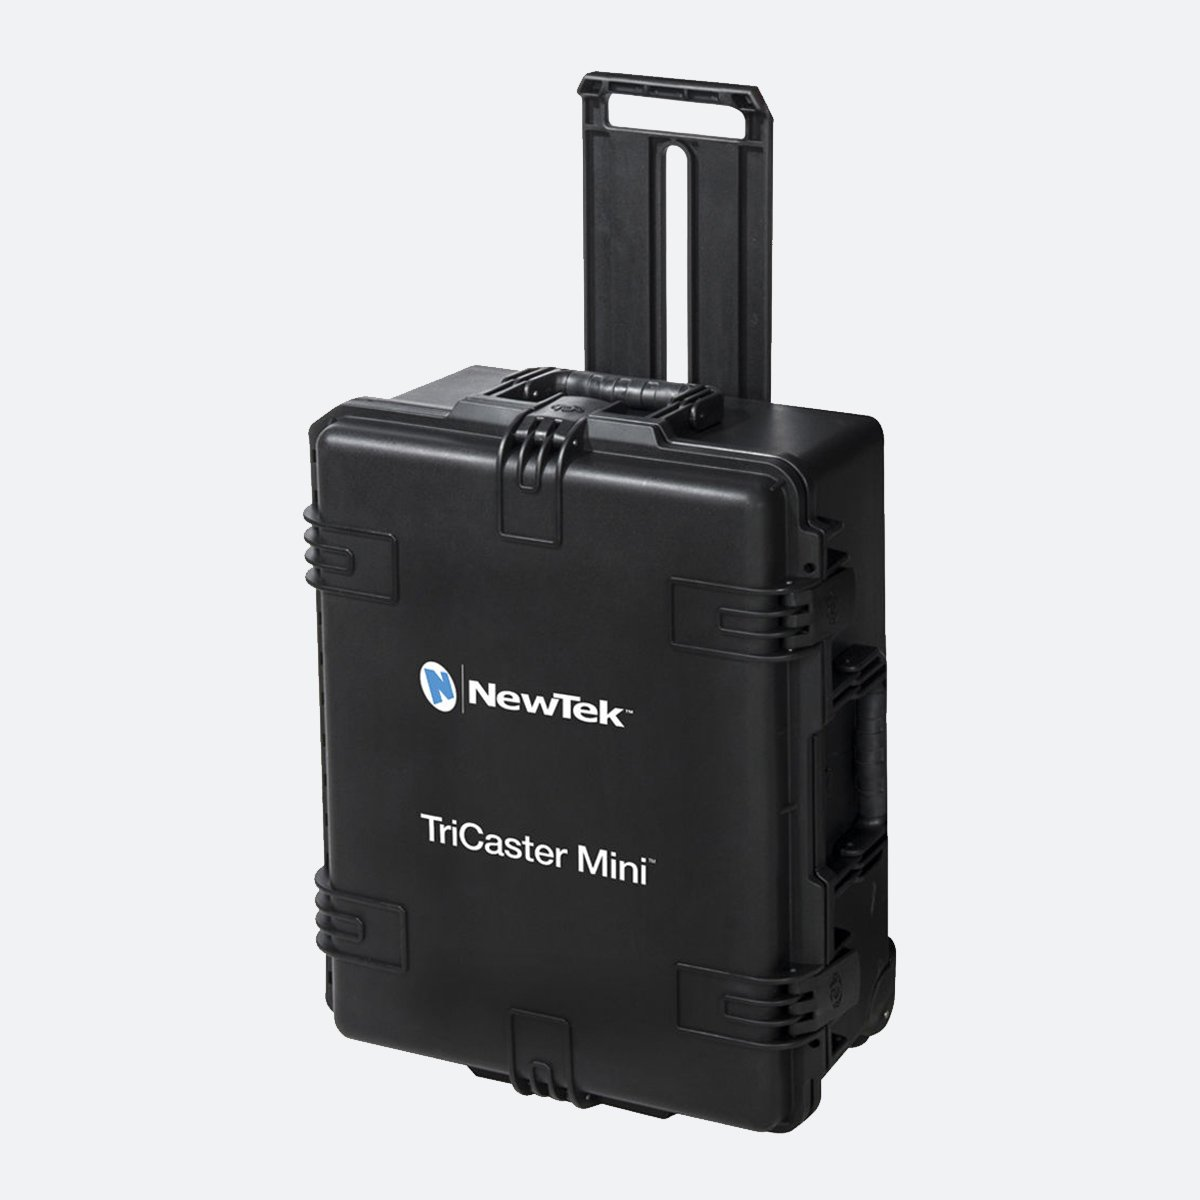 NewTek TriCaster Mini Travel Case